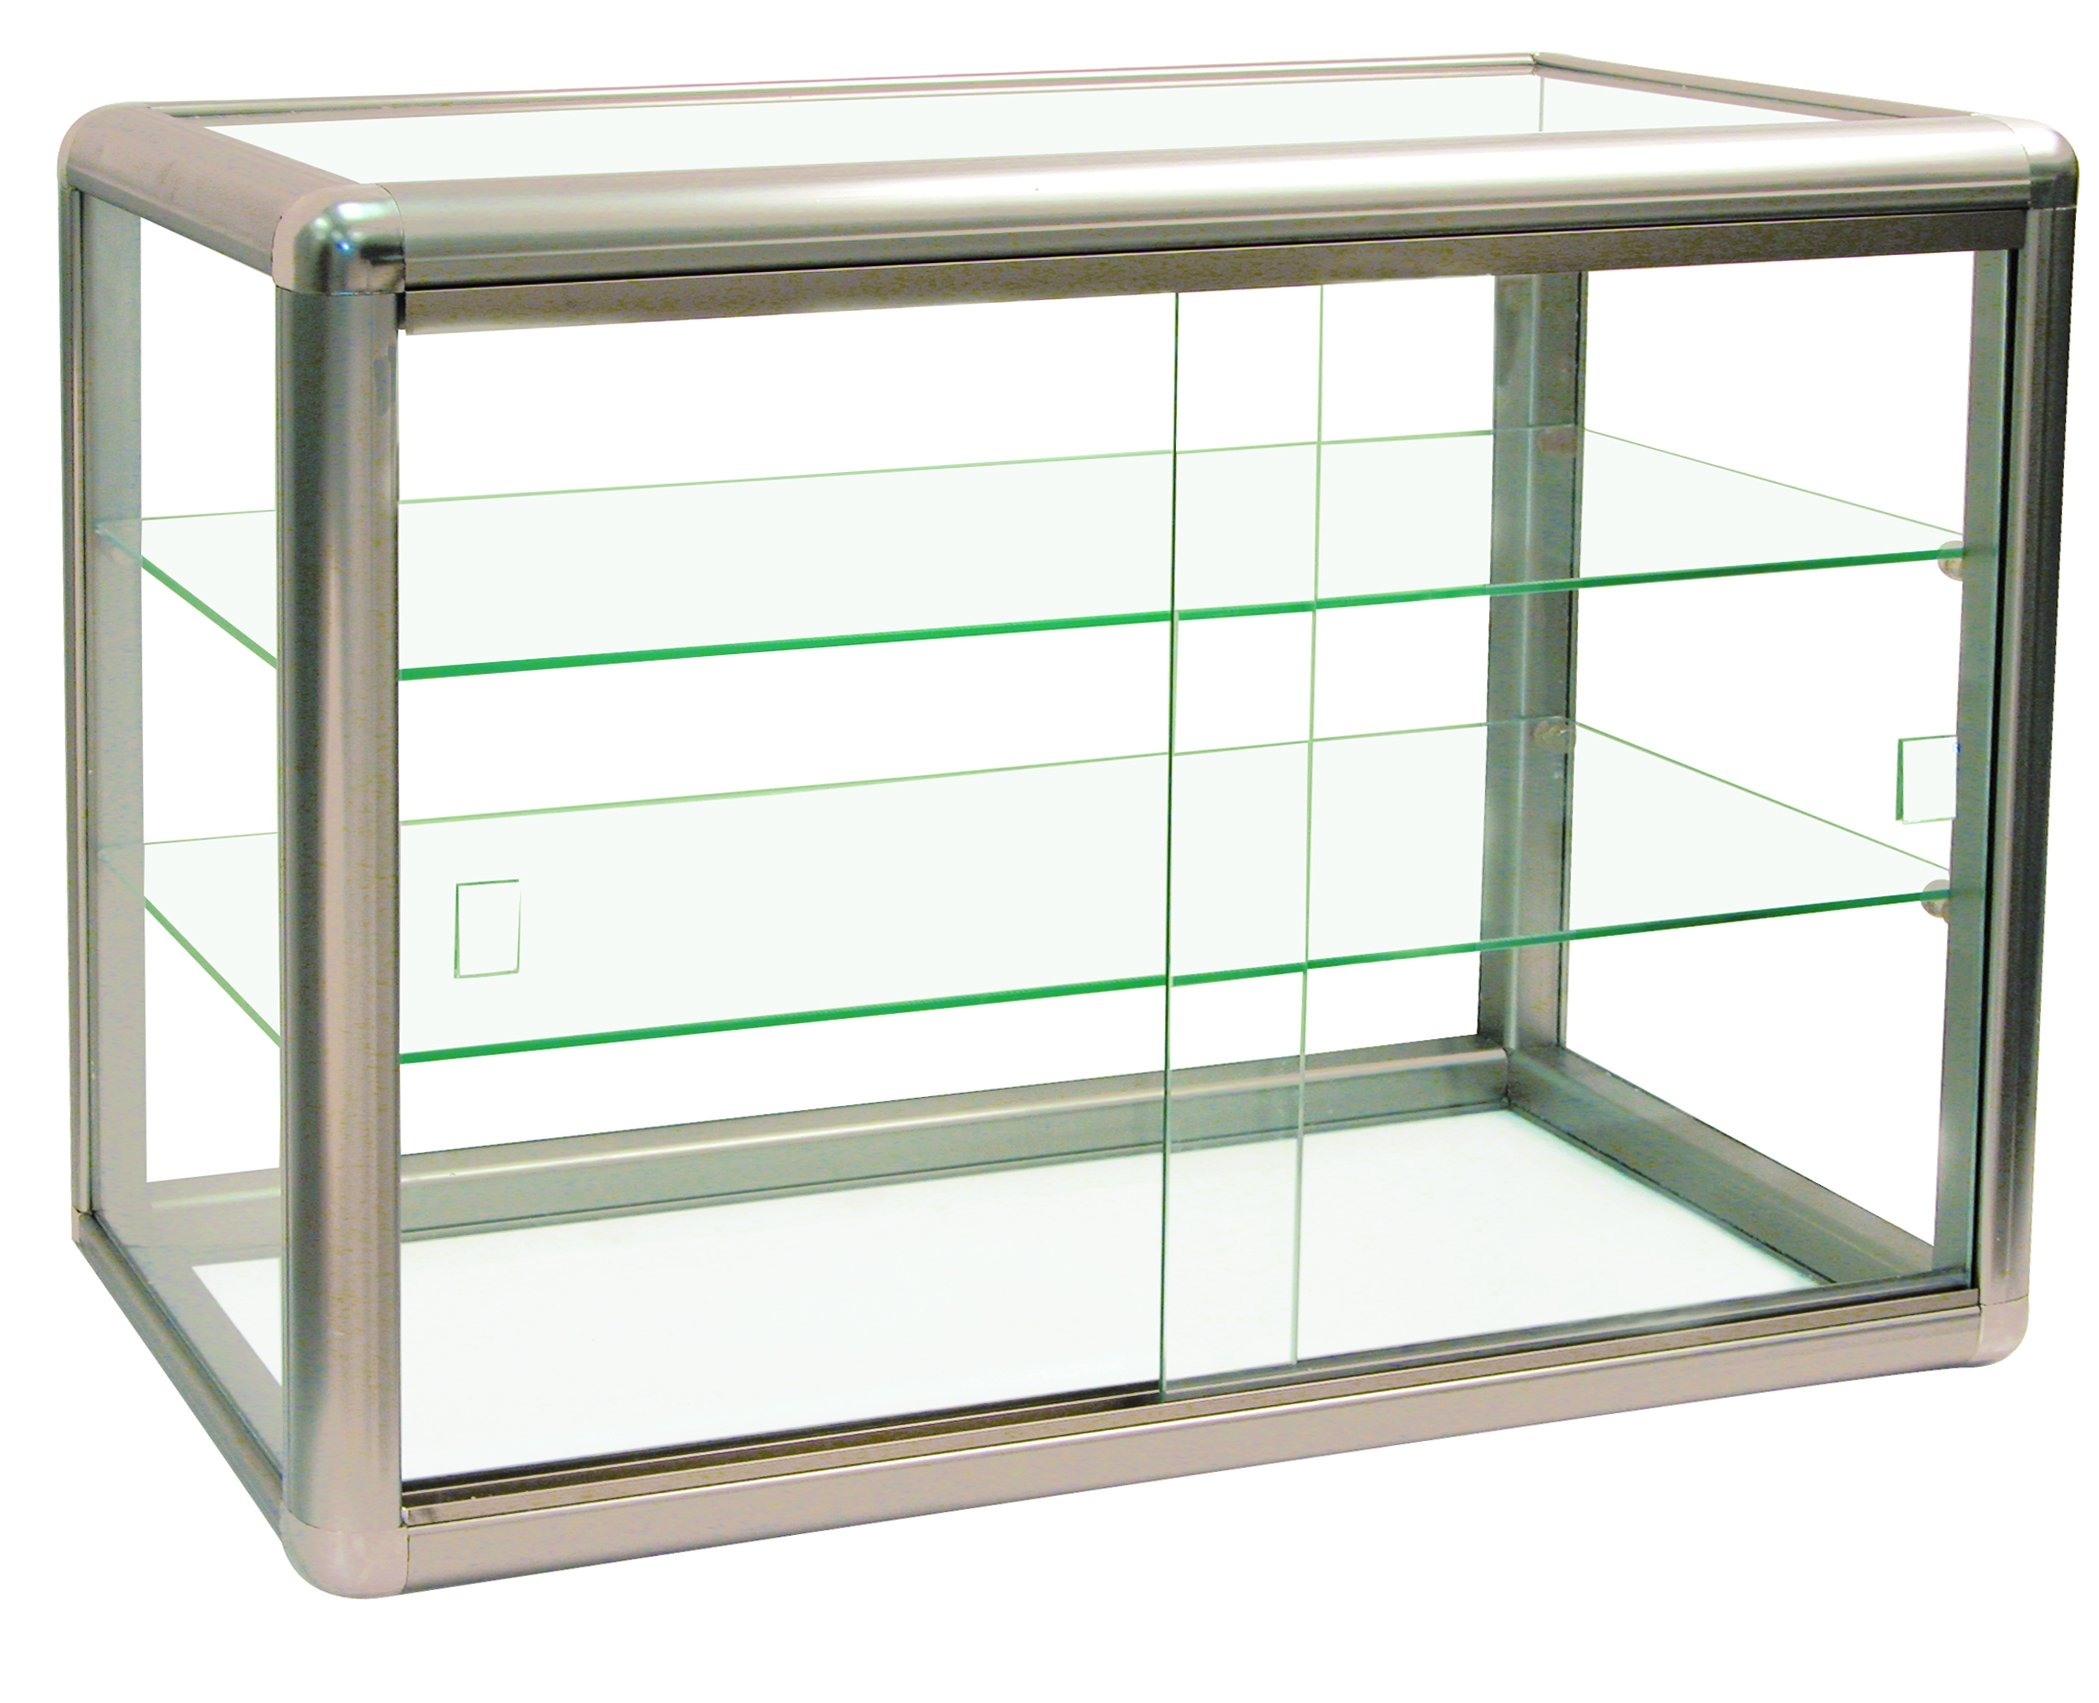 Elegant Champagne Trim Anodized Aluminum Display Table Top Tempered Glass Show Case. Tempered Glass with Key Lock Elegant Matte Gold by 888 Display USA